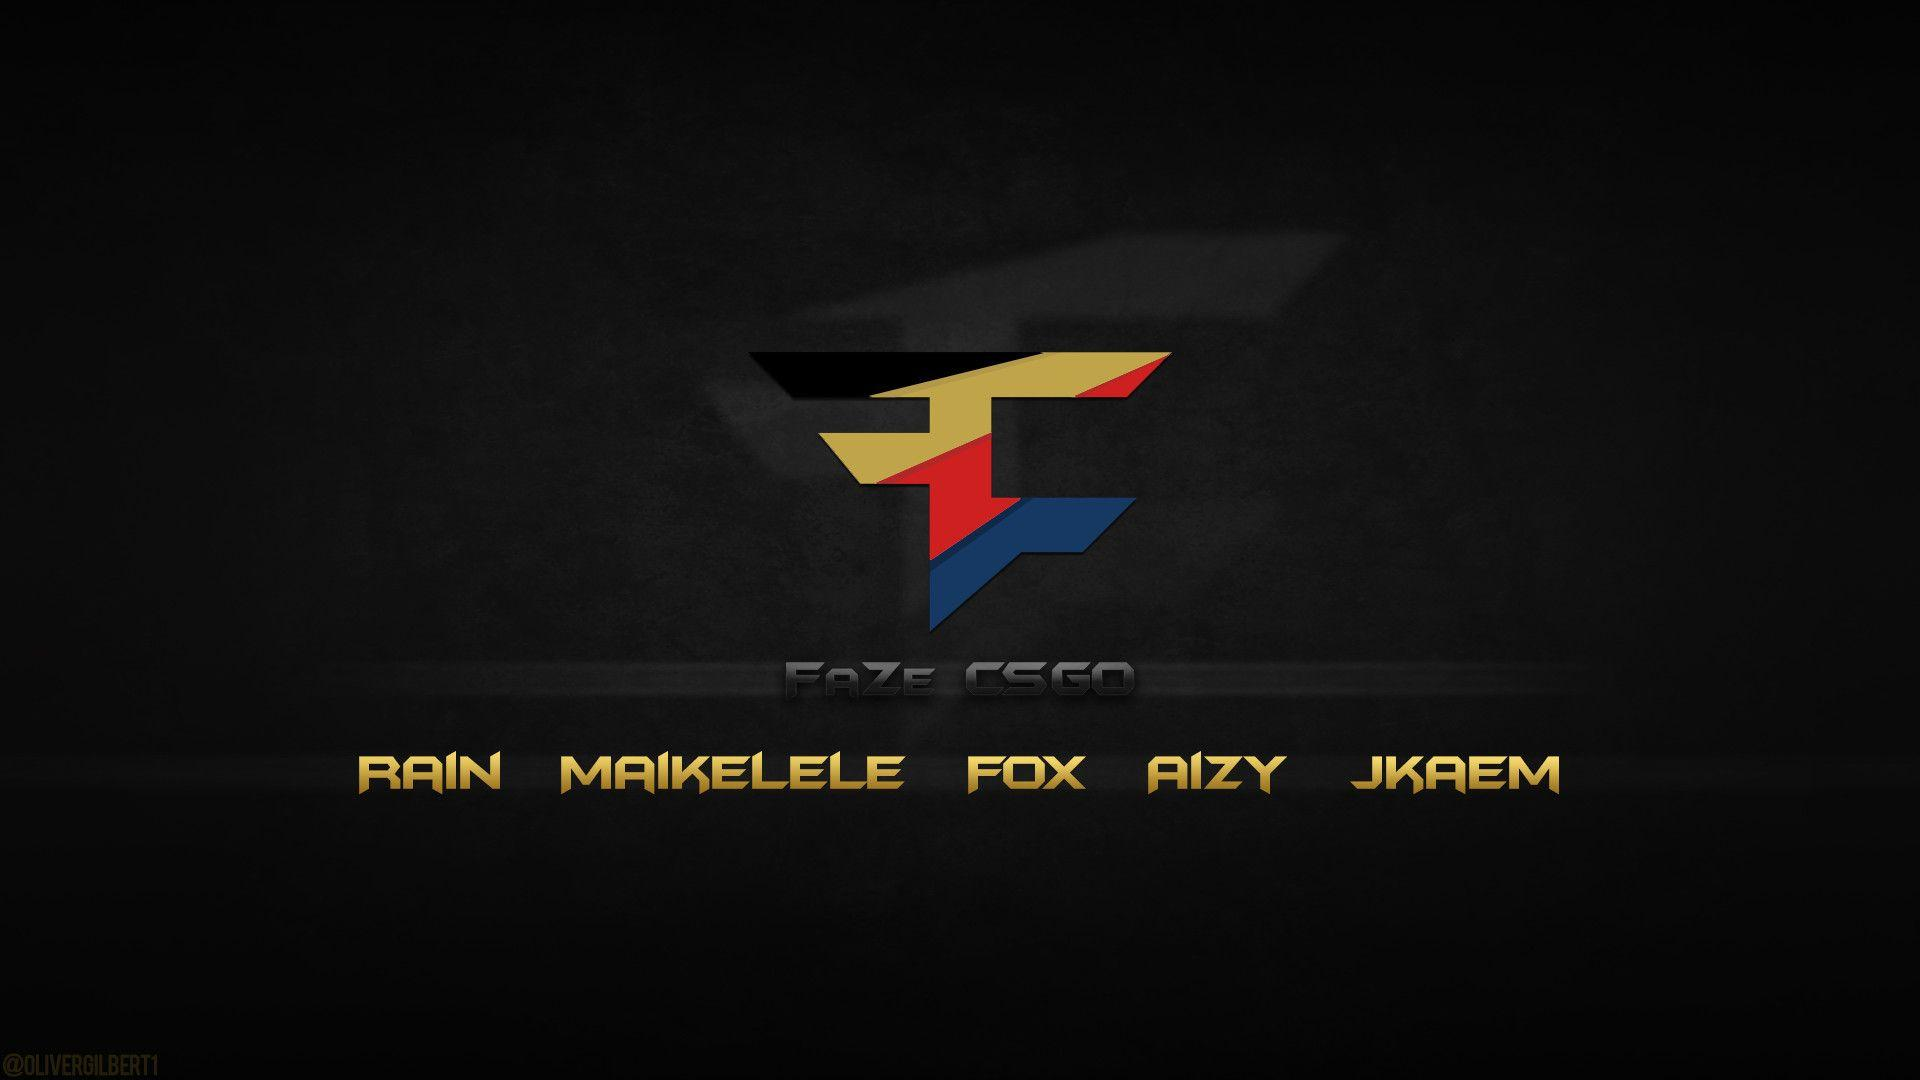 Faze Rain Logo Iphone Wallpapers ✓ Labzada Wallpapers